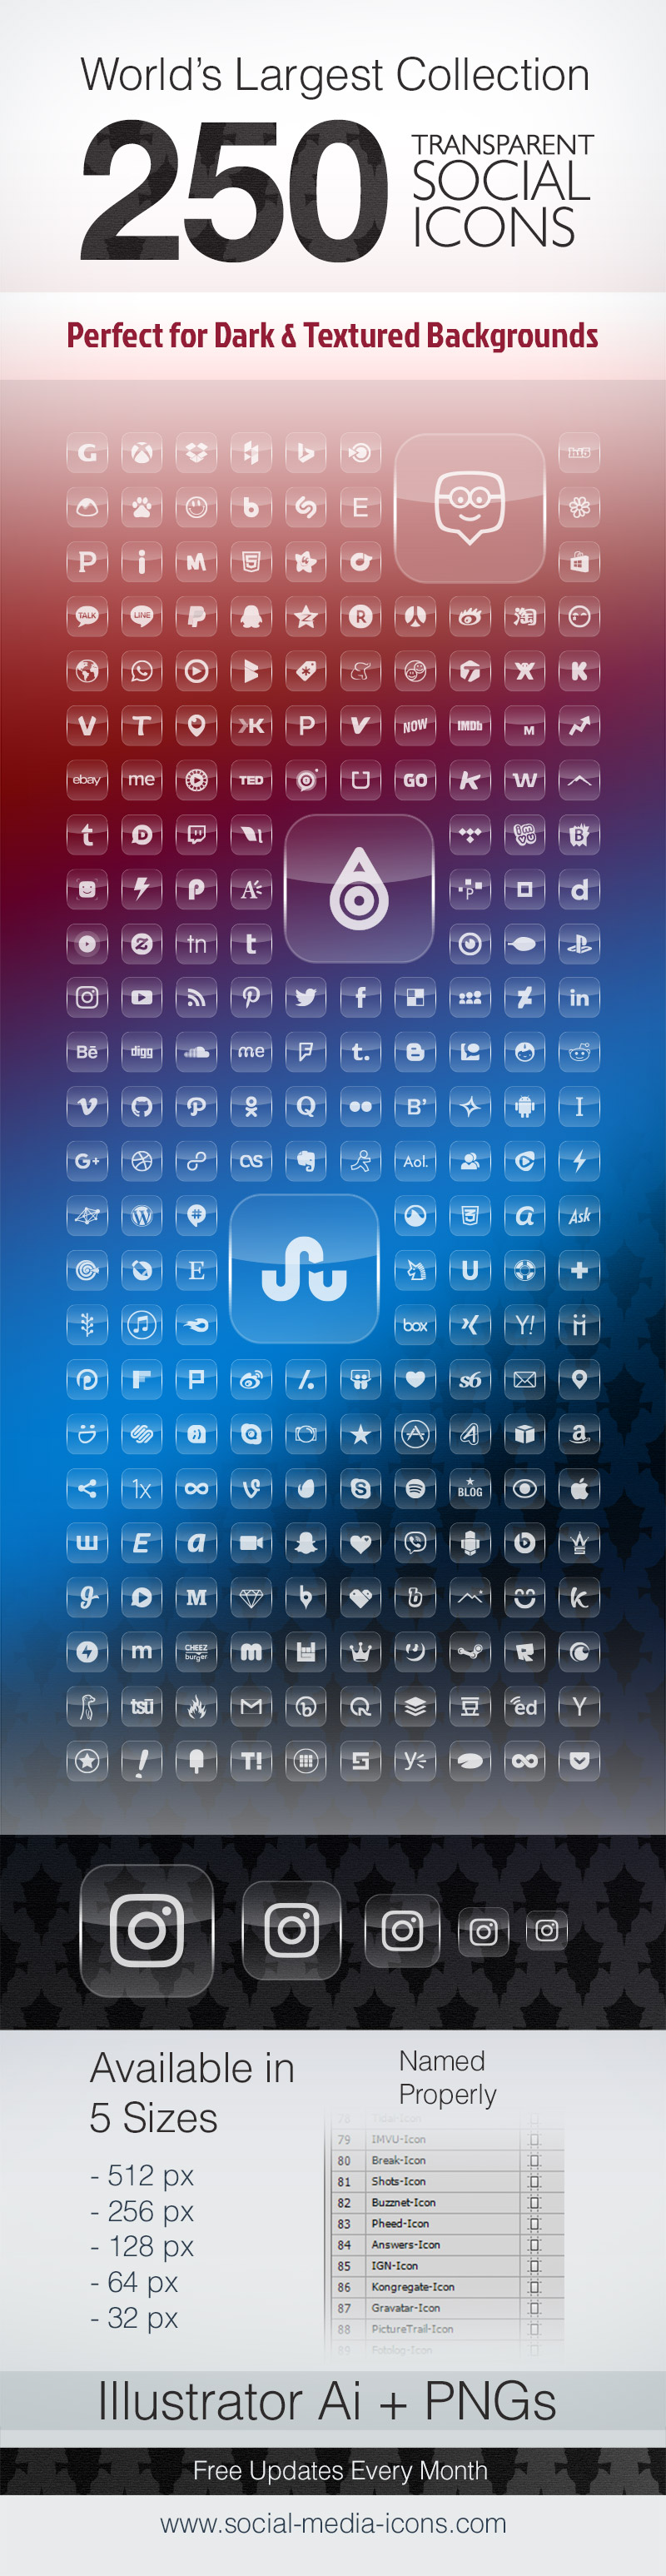 250-Premium-Transparent-Social-Media-Icons-for-Dark-Website-Backgrounds